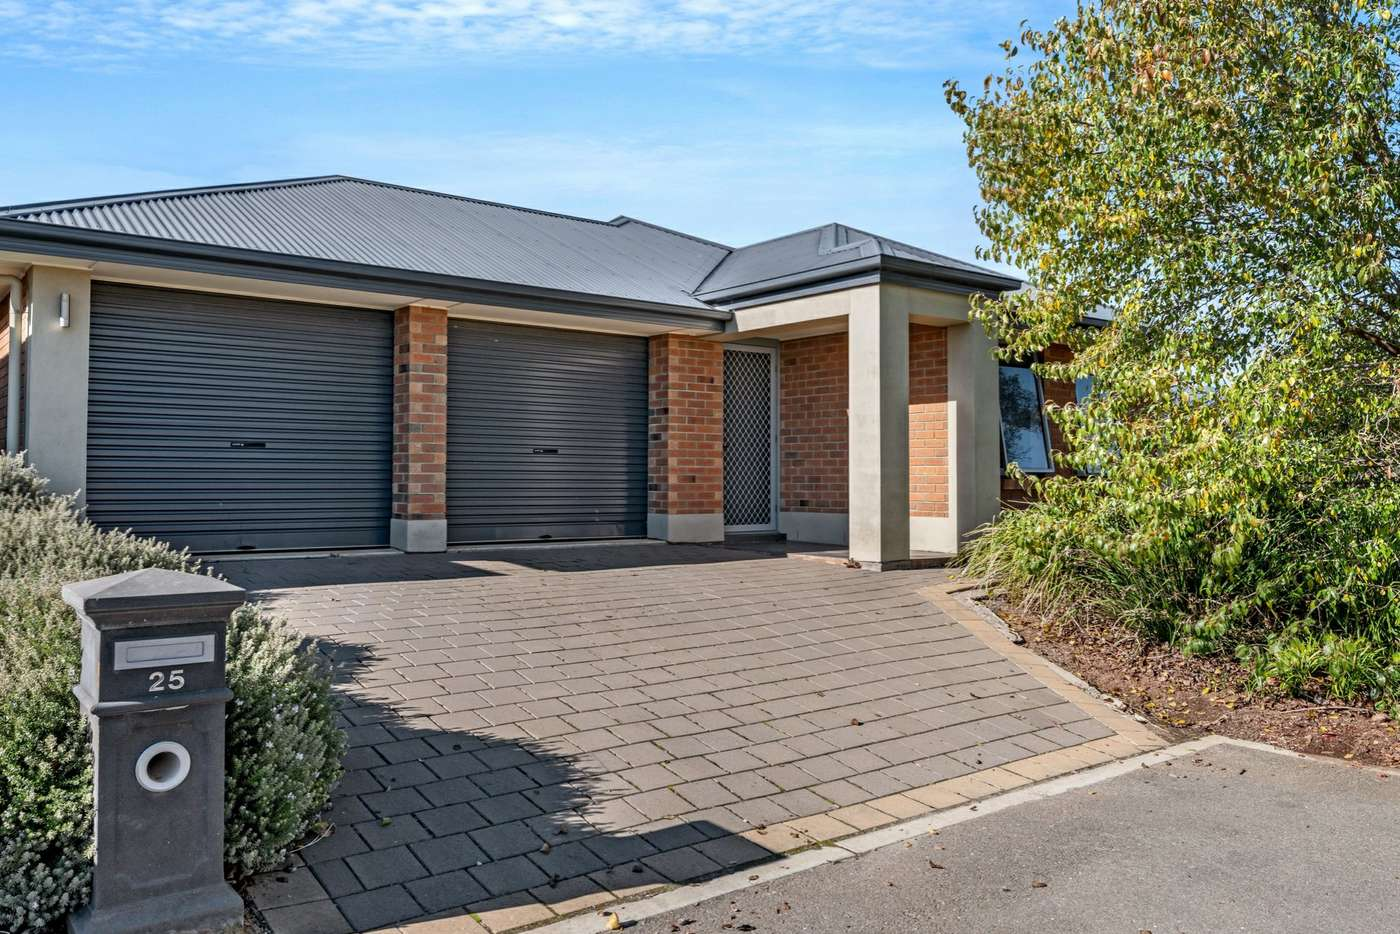 Main view of Homely house listing, 25 Bradford Street, Mount Barker SA 5251